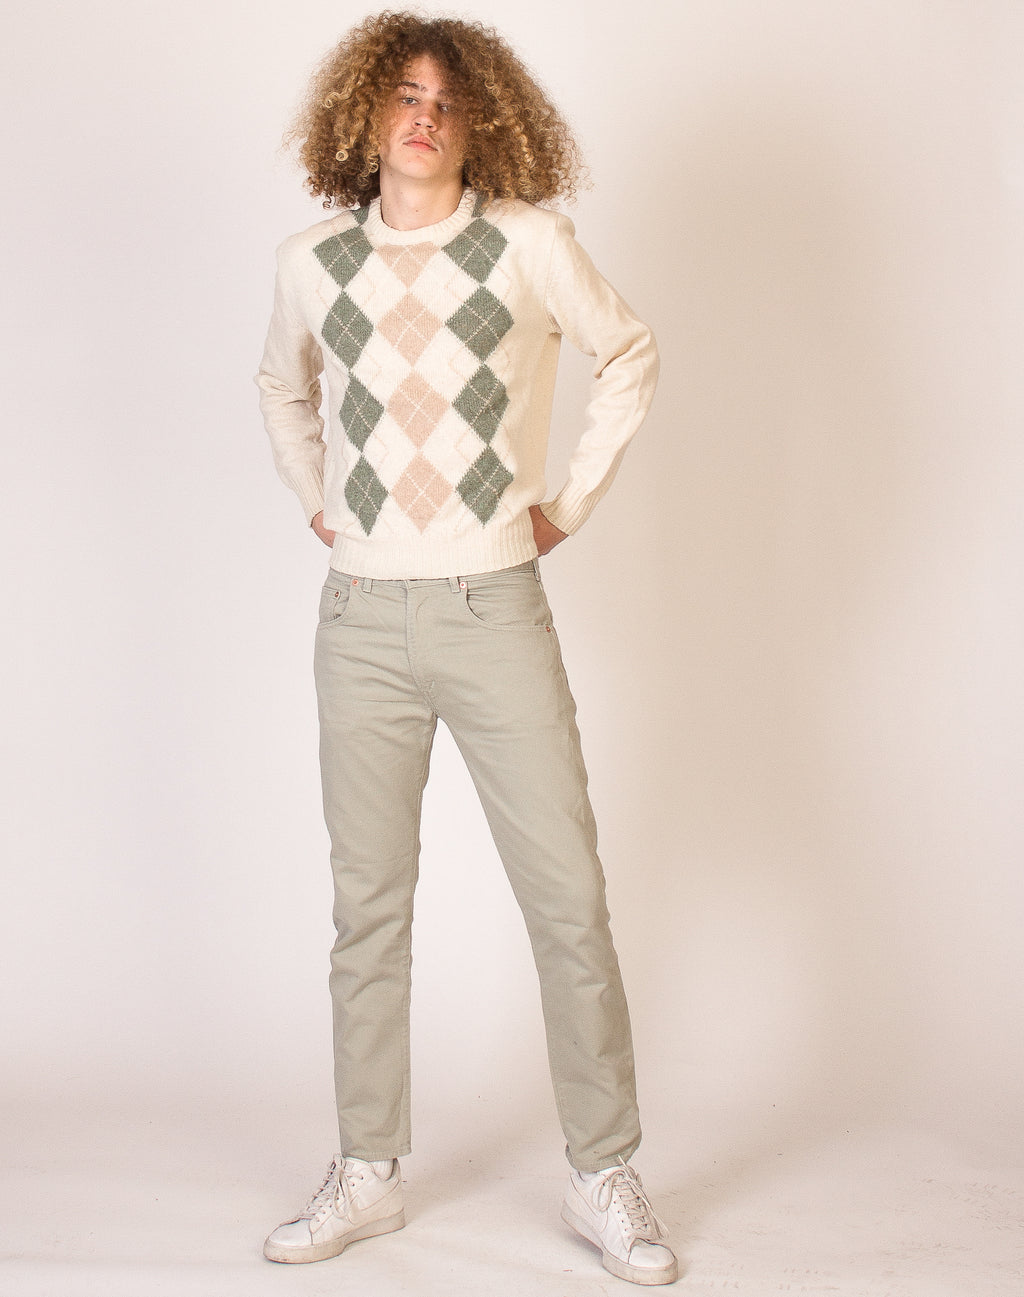 CREAM ARGYLE KNIT